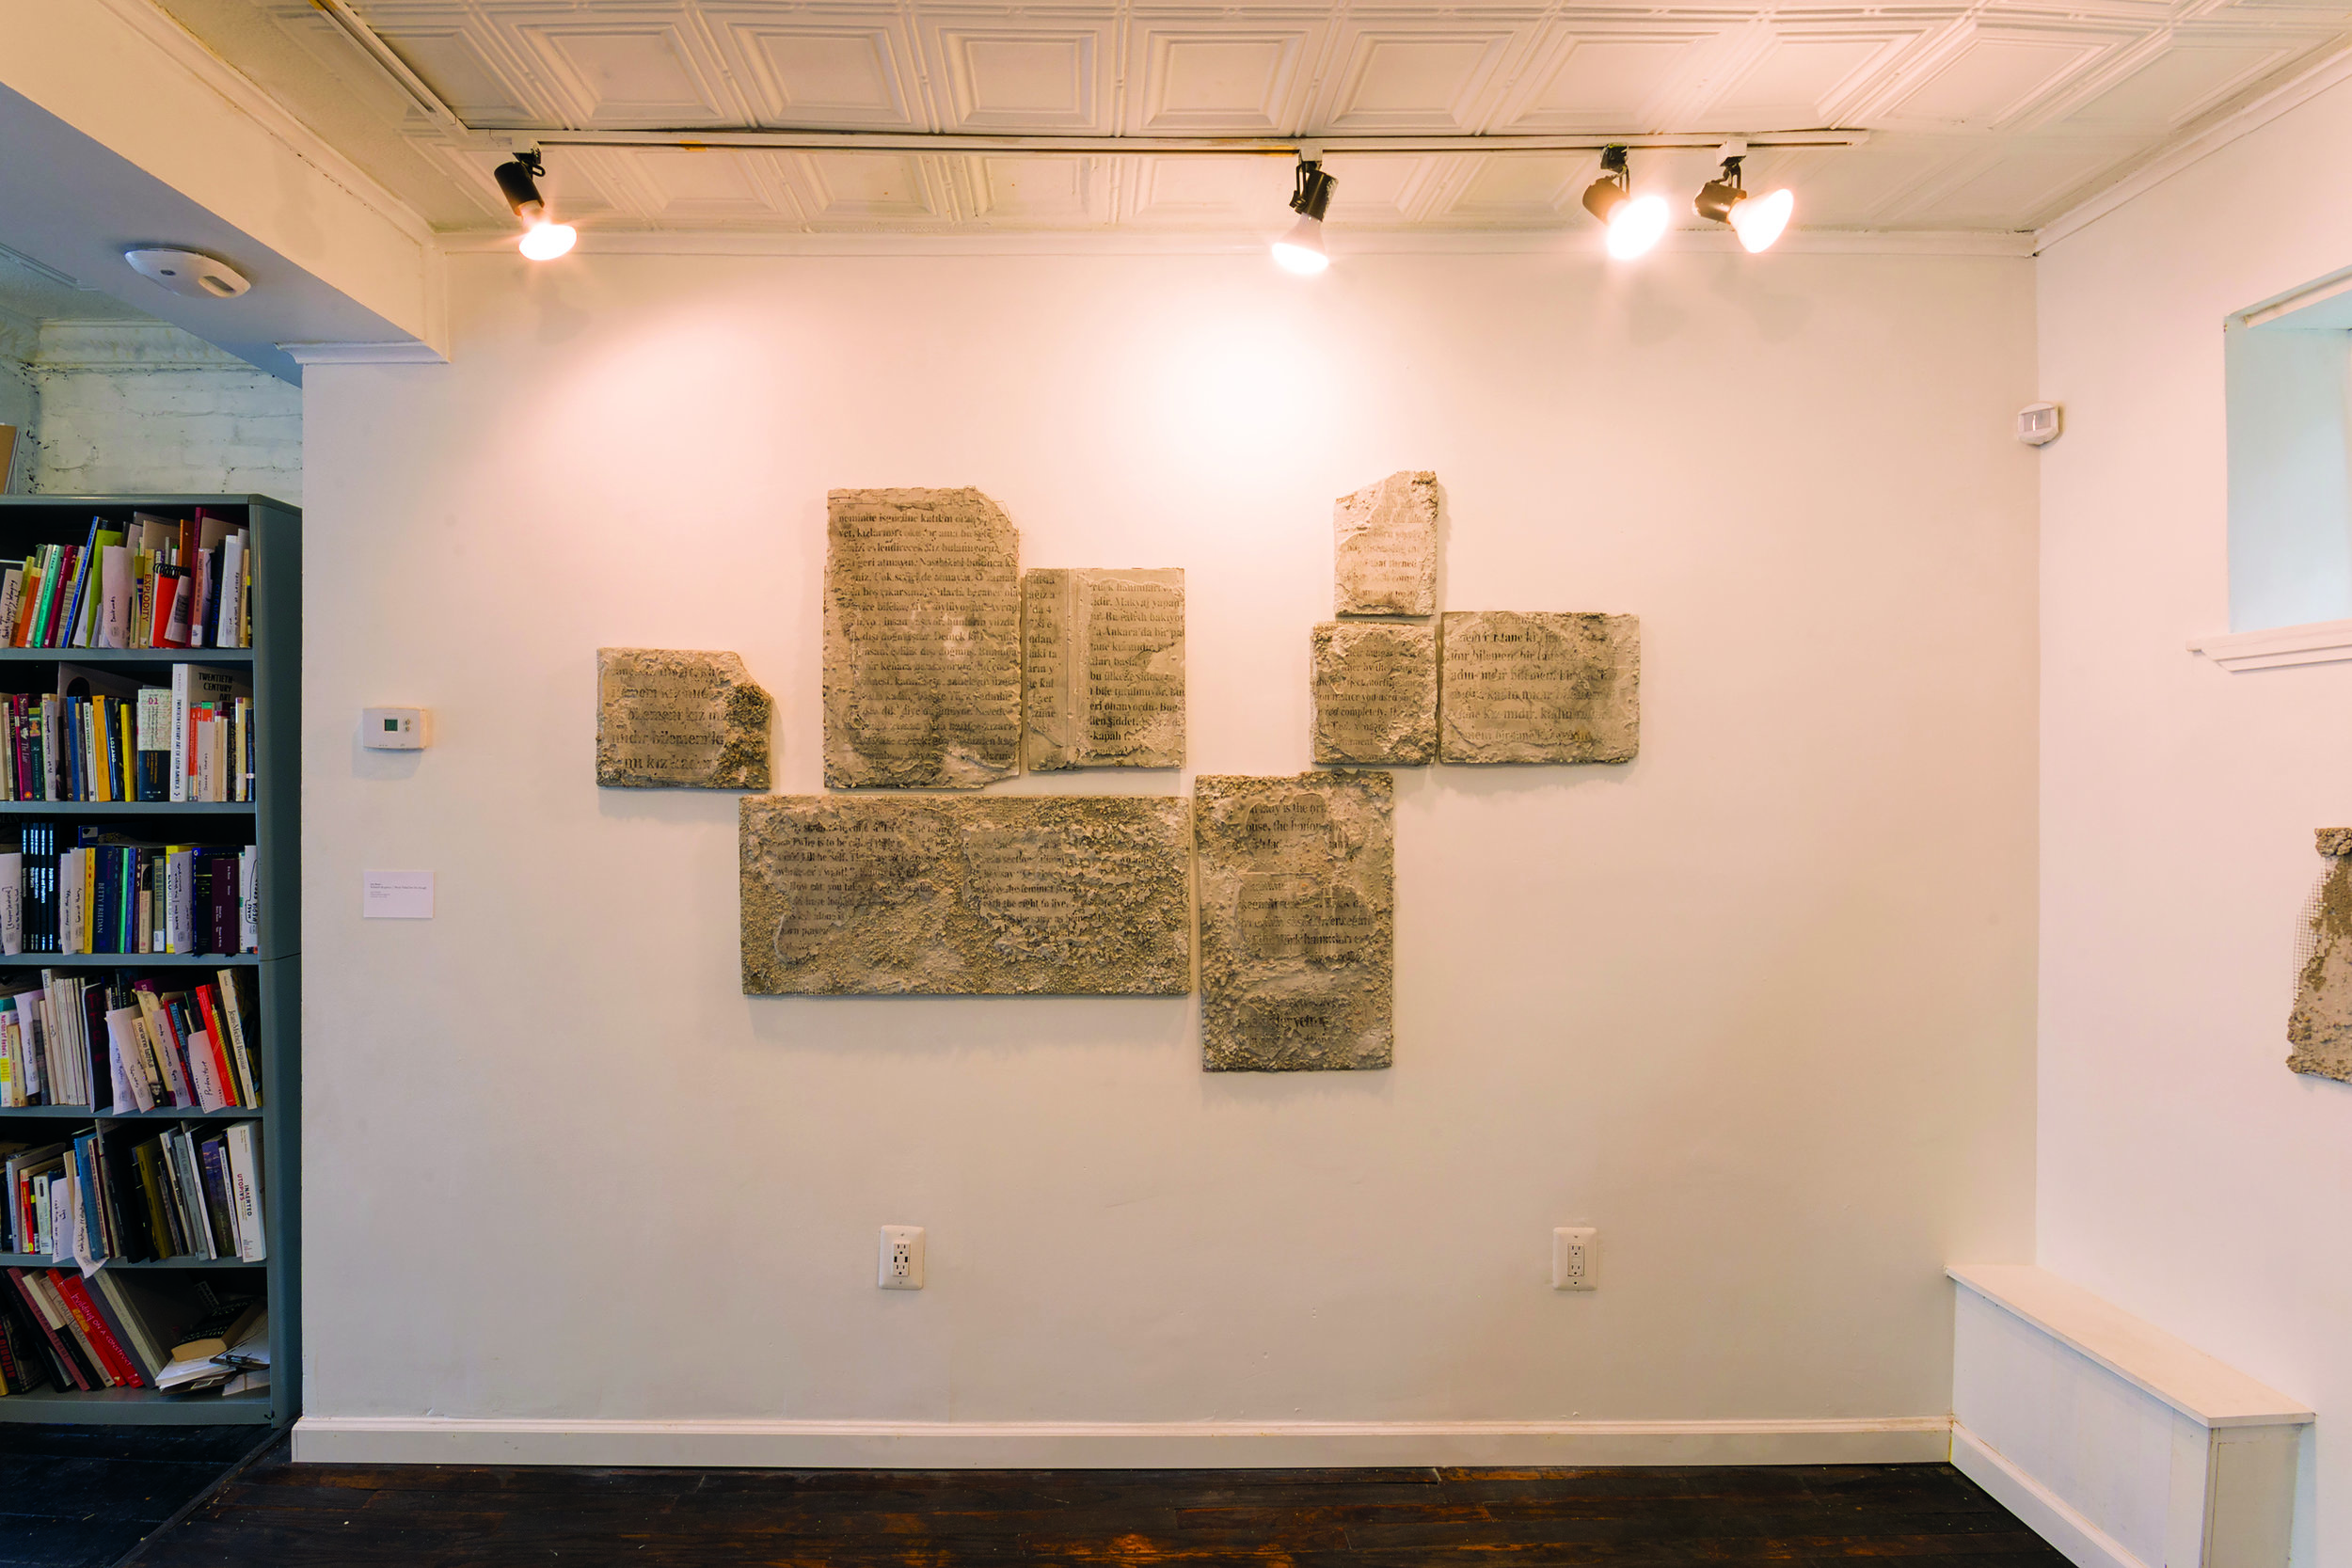 Sera Boeno,  Kelimeler Kıyafetsiz (: Words Naked/Are Not Enough),  2016–ongoing. Cement, charcoal, pigment. Each slab ~70 x 35 cm.  Photos by Michael Bussell (unless otherwise noted).